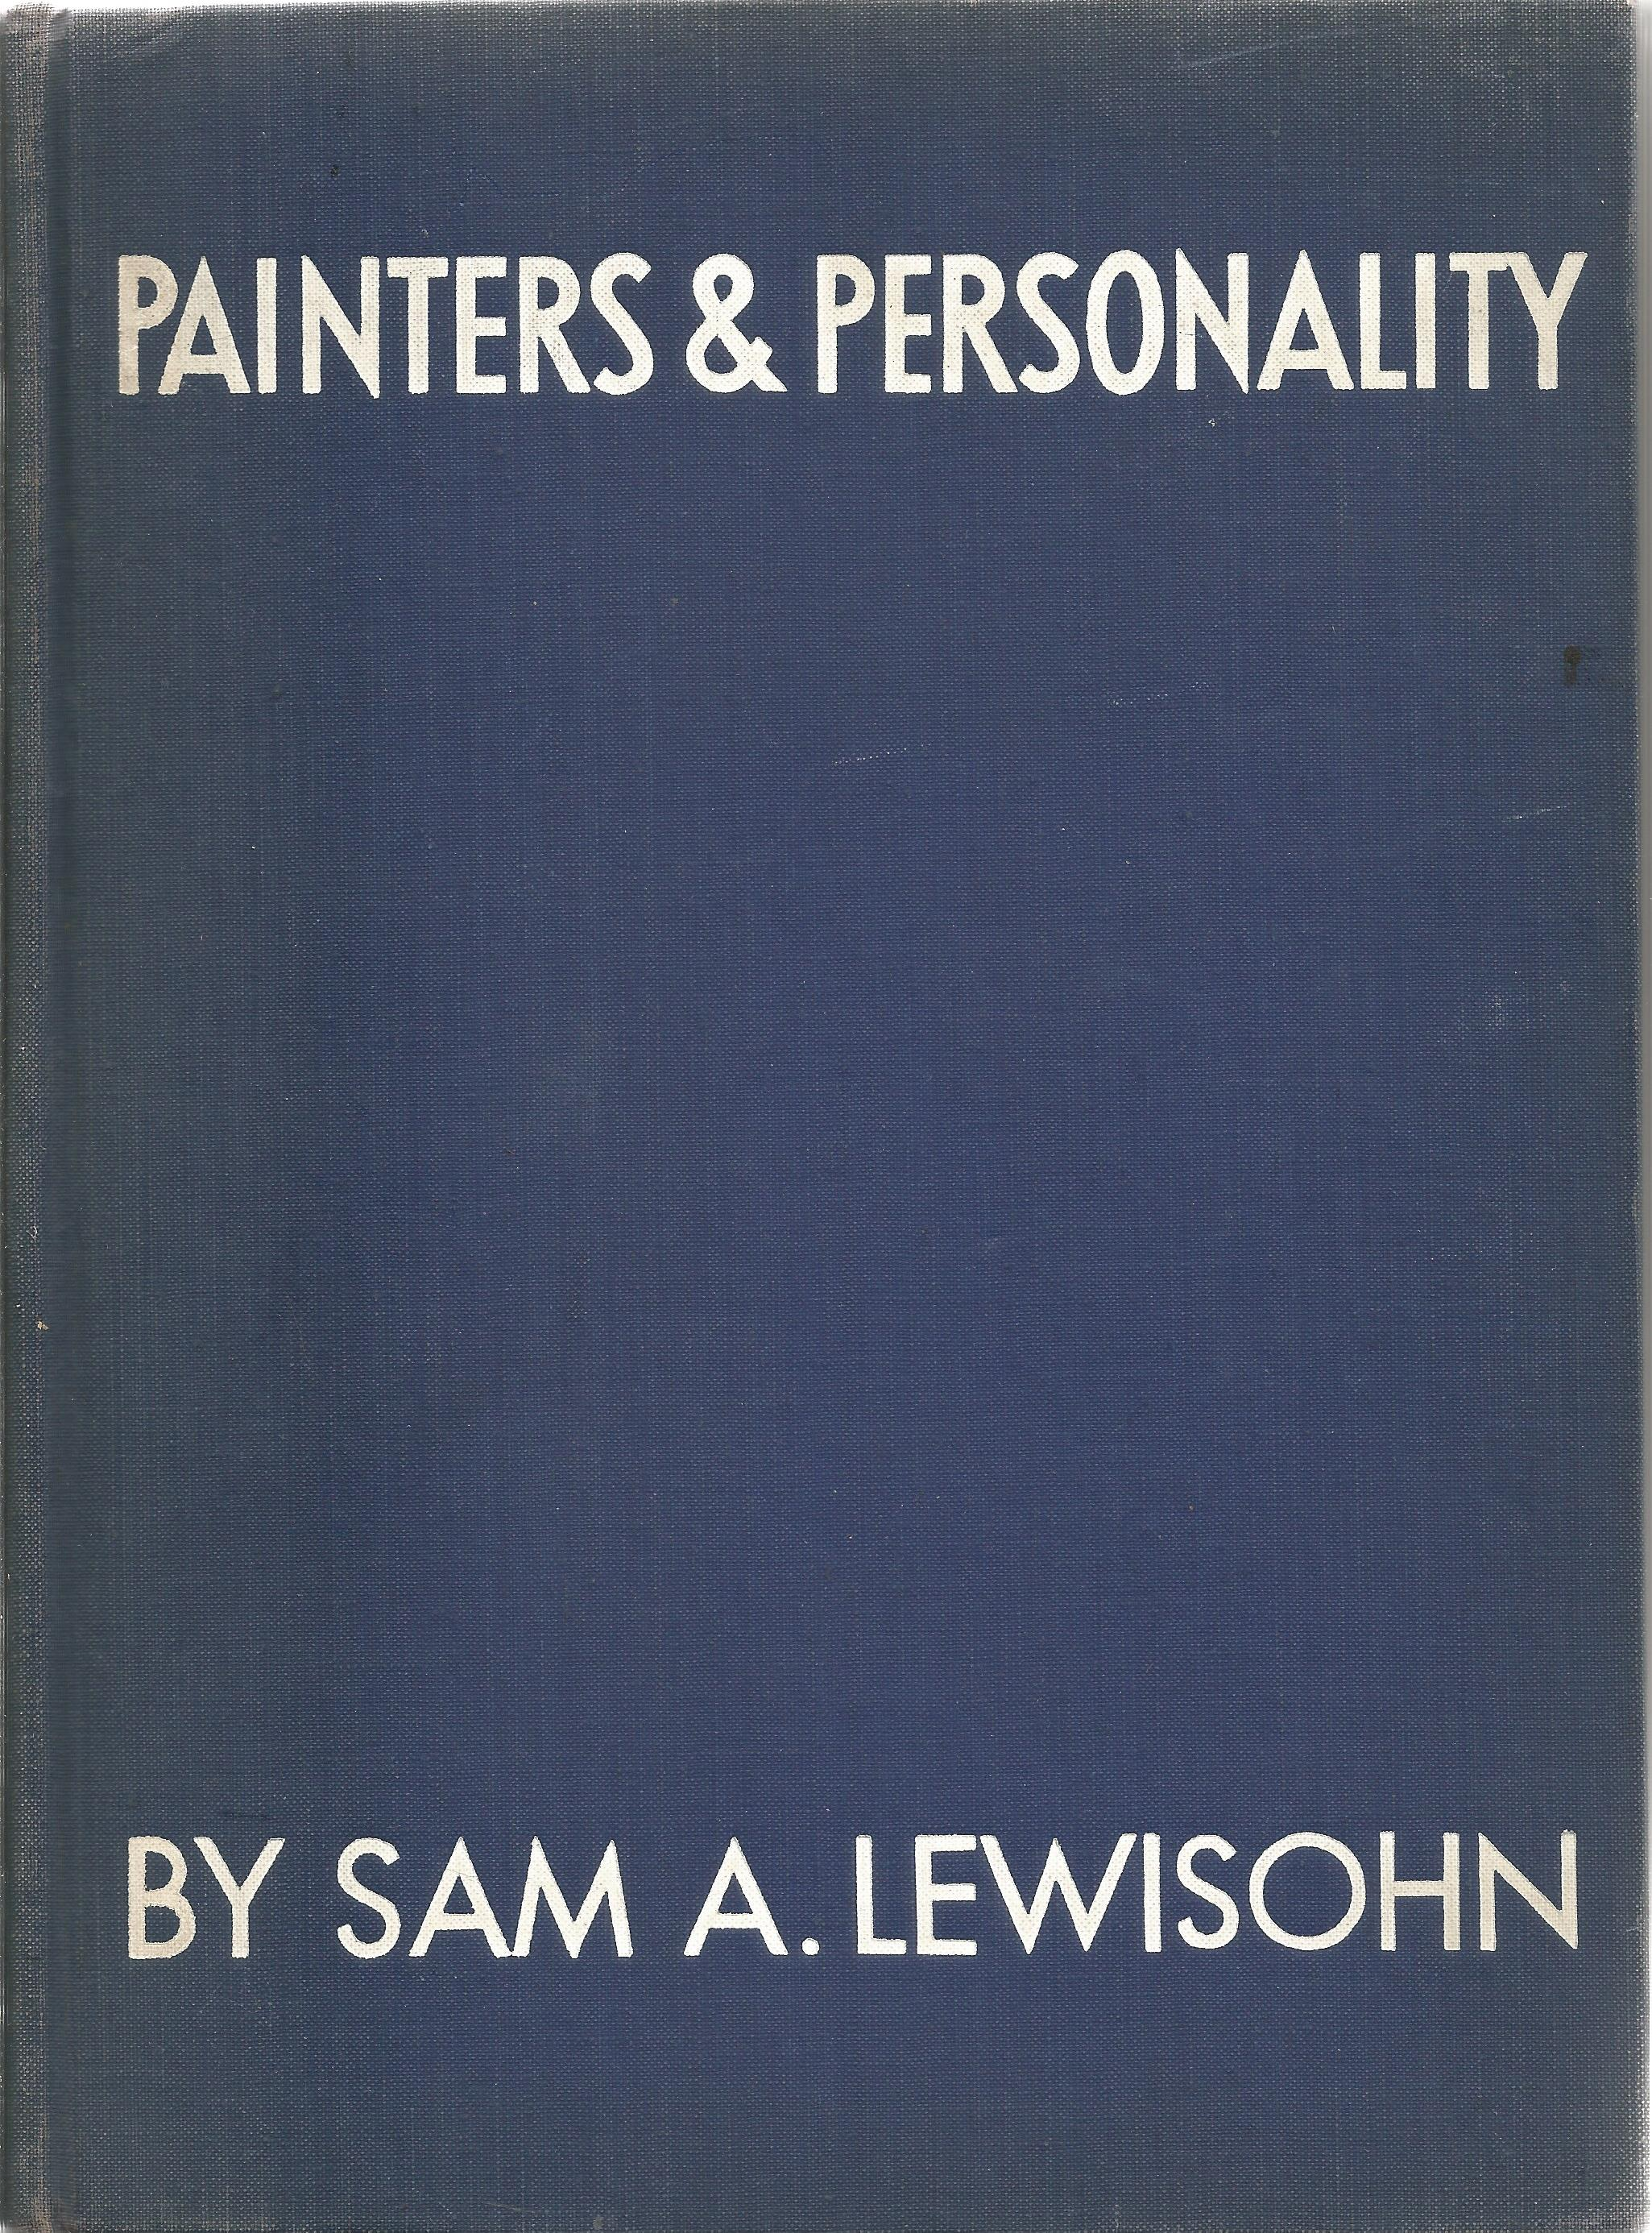 Sam A. Lewisohn Hardback Book Painters & Personality 1937 signed by the Author on the first Page